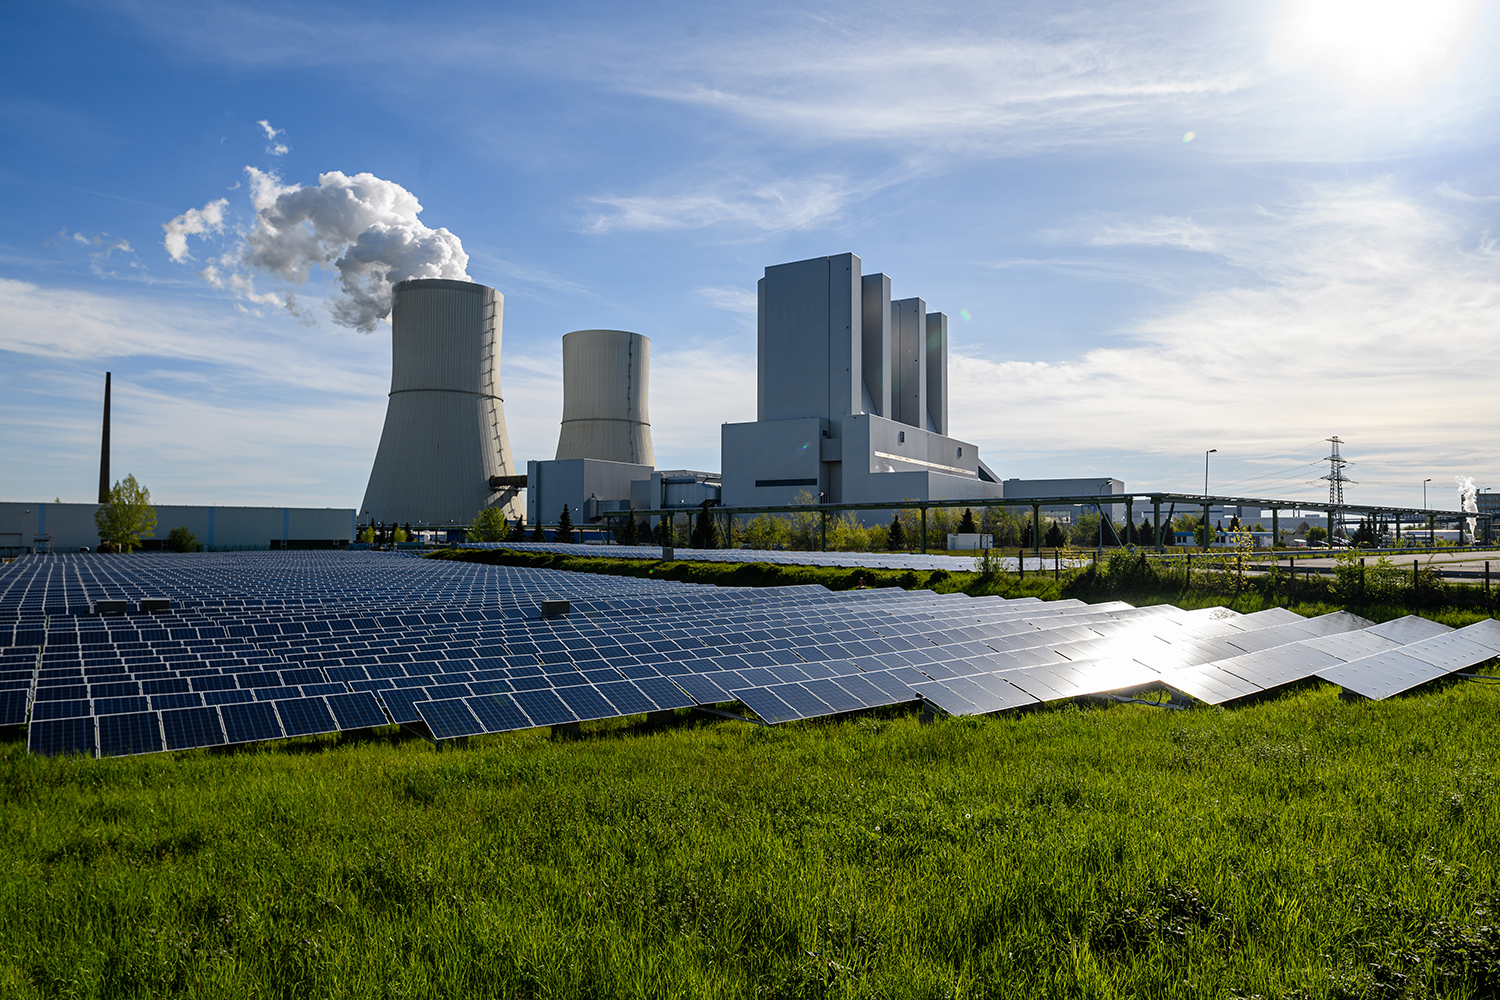 A solar energy field stands next to the Lippendorf coal-fired power plant in Germany.